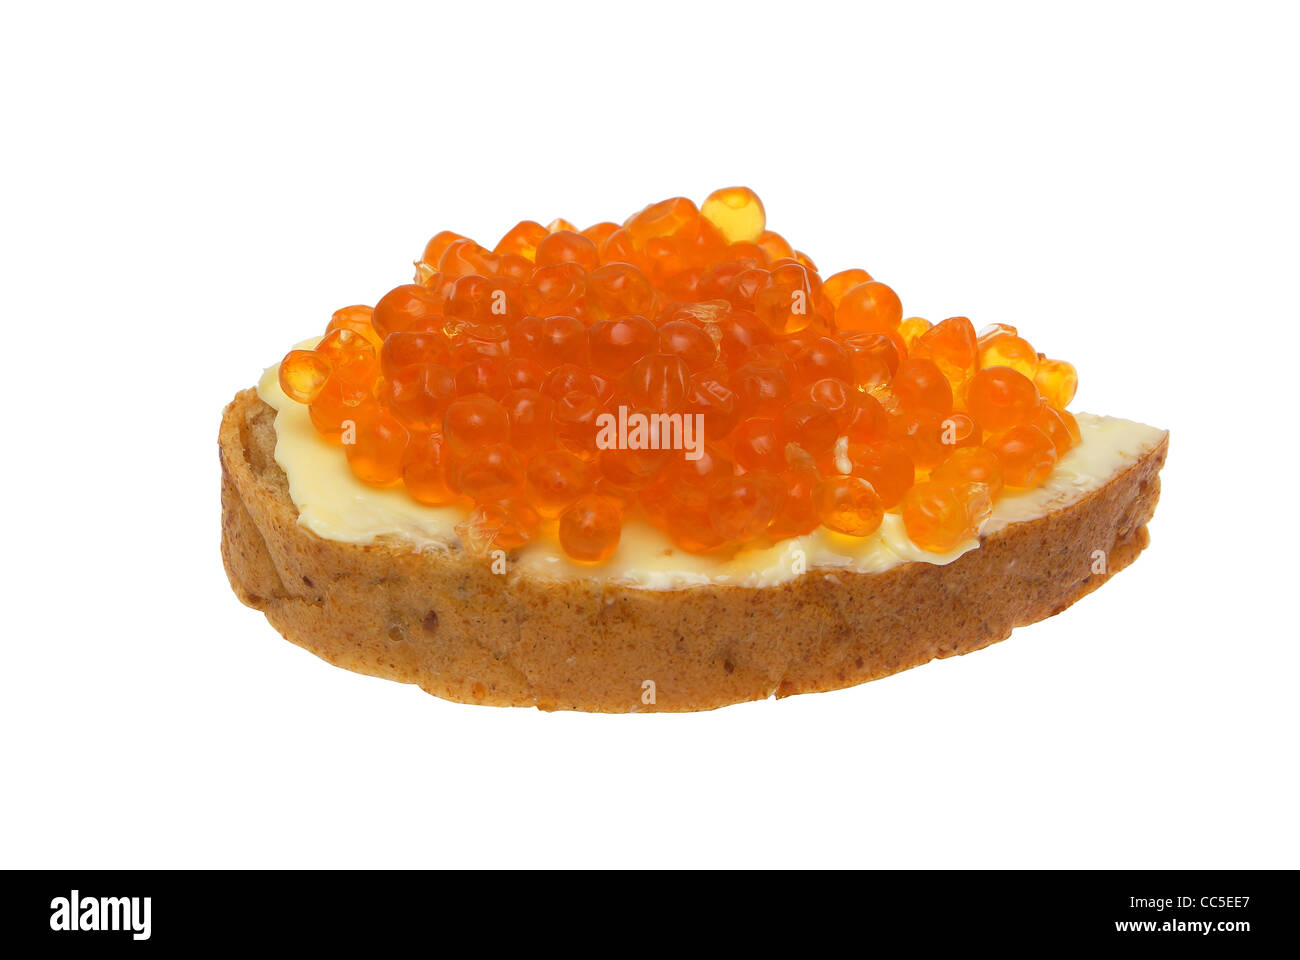 Sandwich with red caviar. - Stock Image